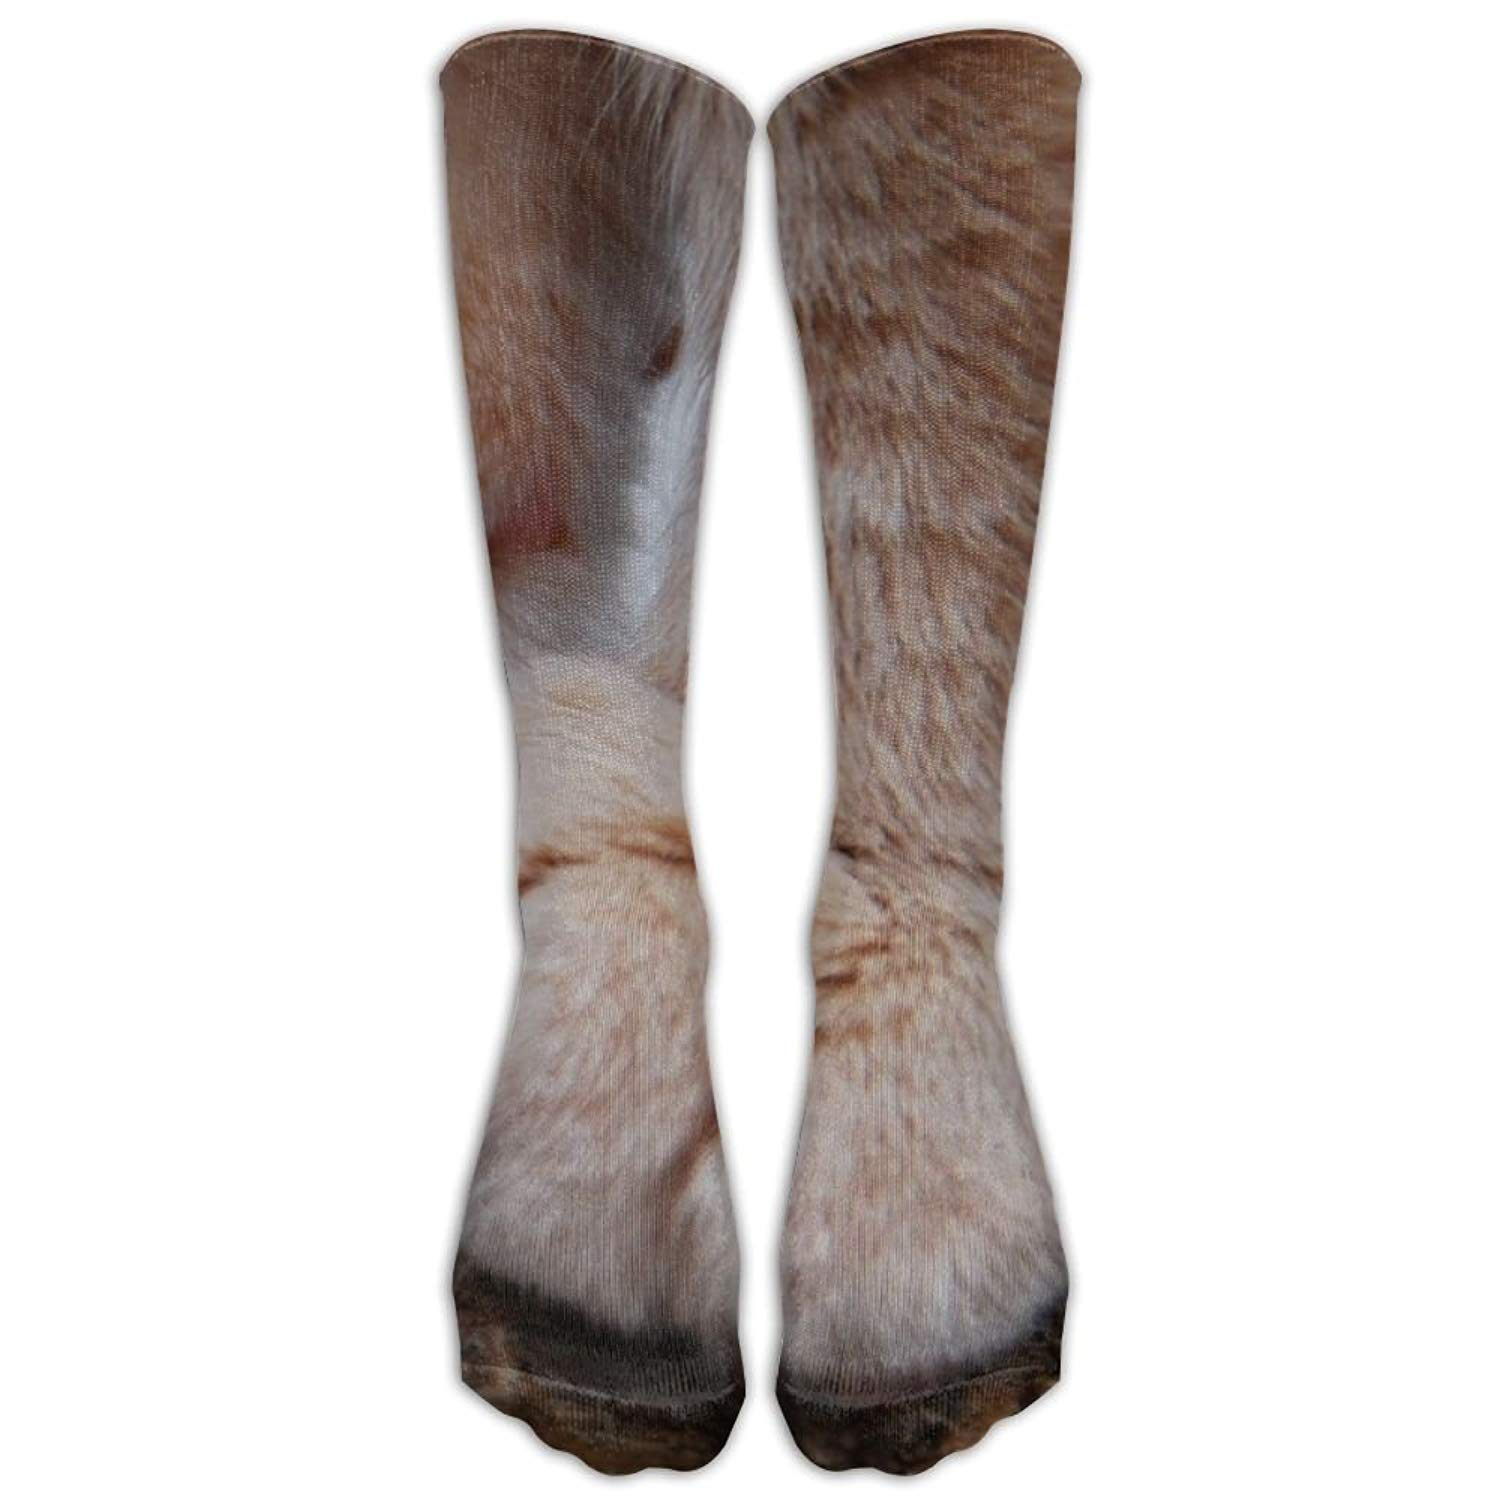 Cat Paws Closeup Macro Depth Of Field Animals Nature Athletic Tube Stockings Women Men Classics Knee High Socks Sport Long Sock One Size